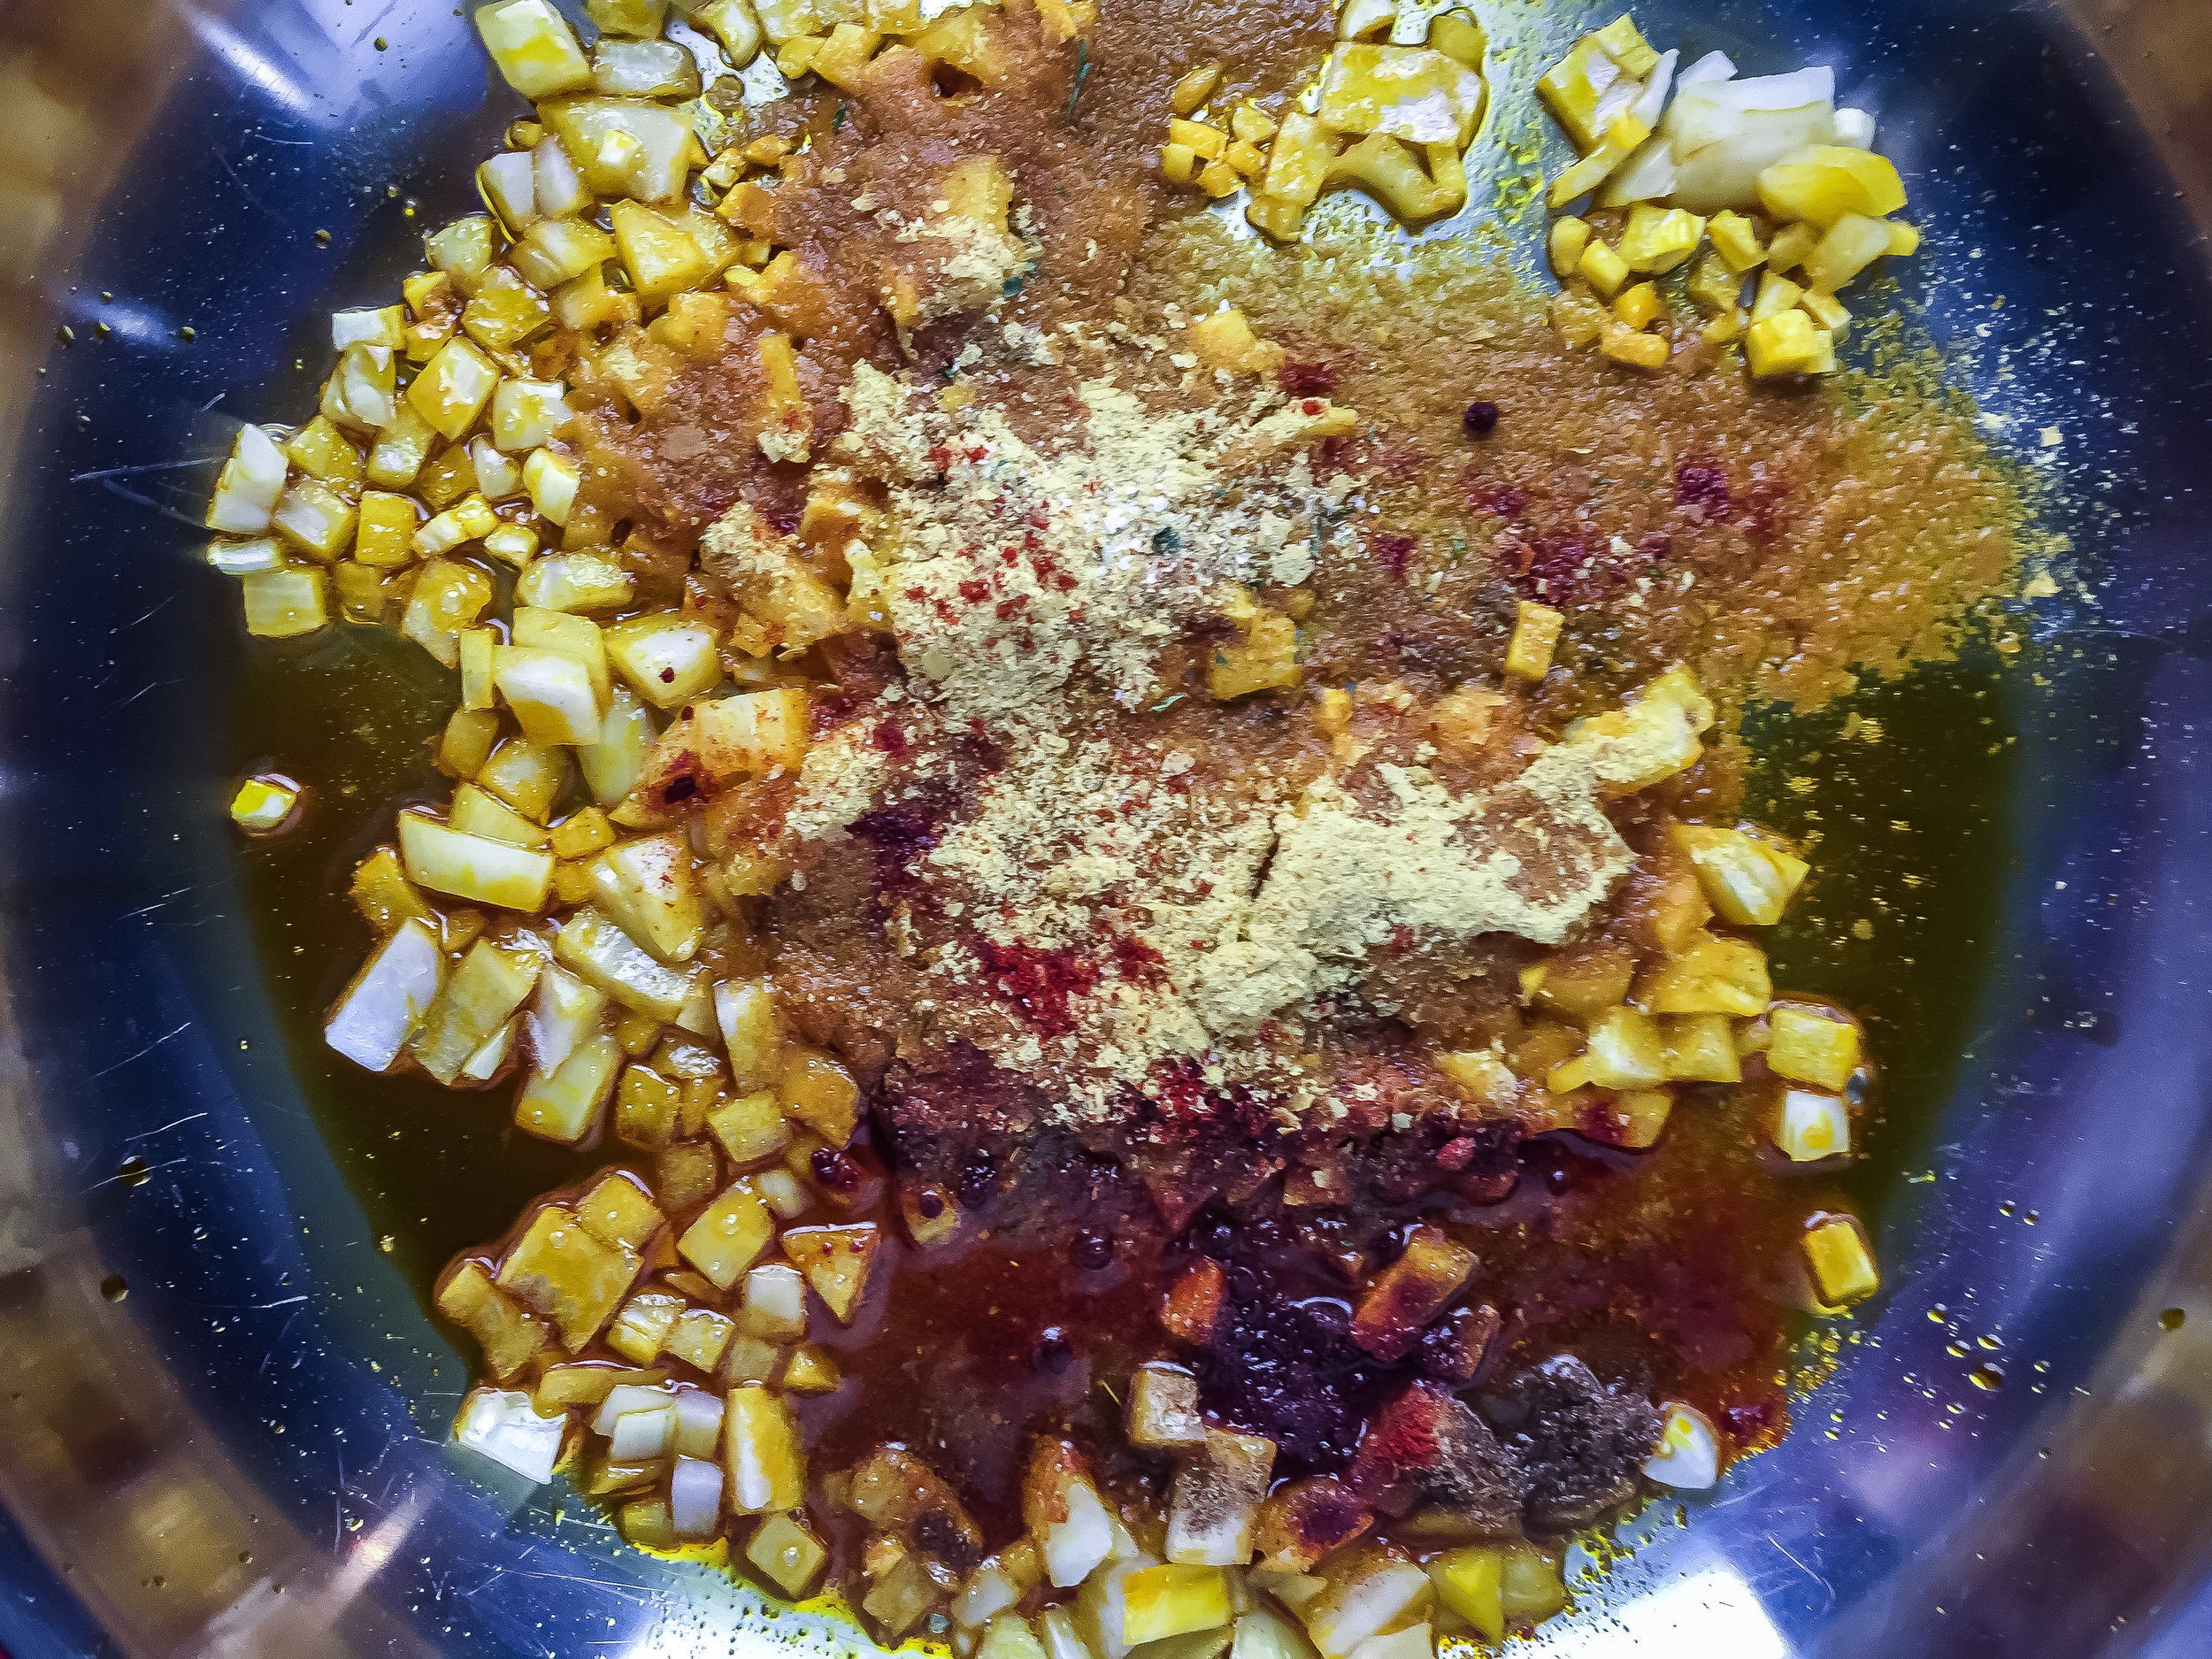 1. Start with the queso. Place palm oil in medium/large frying pan. Warm for 60 seconds over medium heat. Cook up onions and garlic for 4-5 minutes. Add in spices. Mix well. Cook another two minutes.